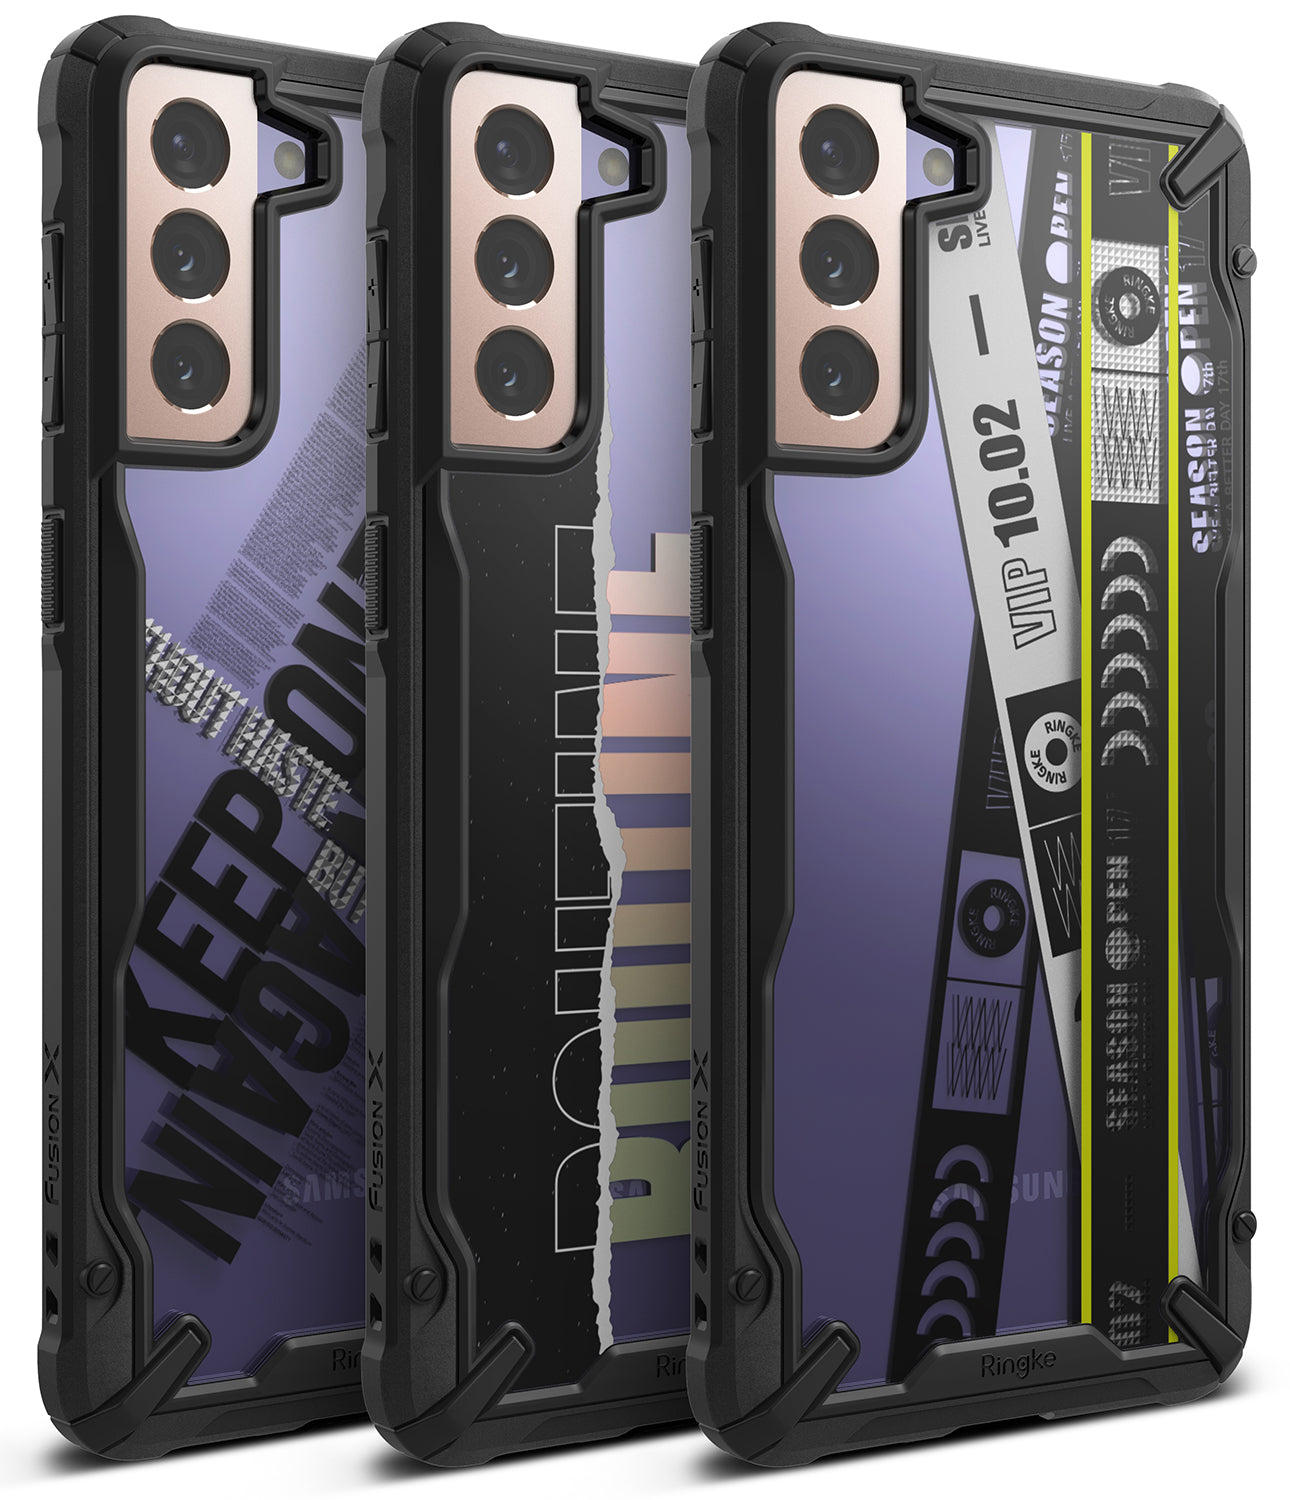 ringke fusion-x case for galaxy s21 plus